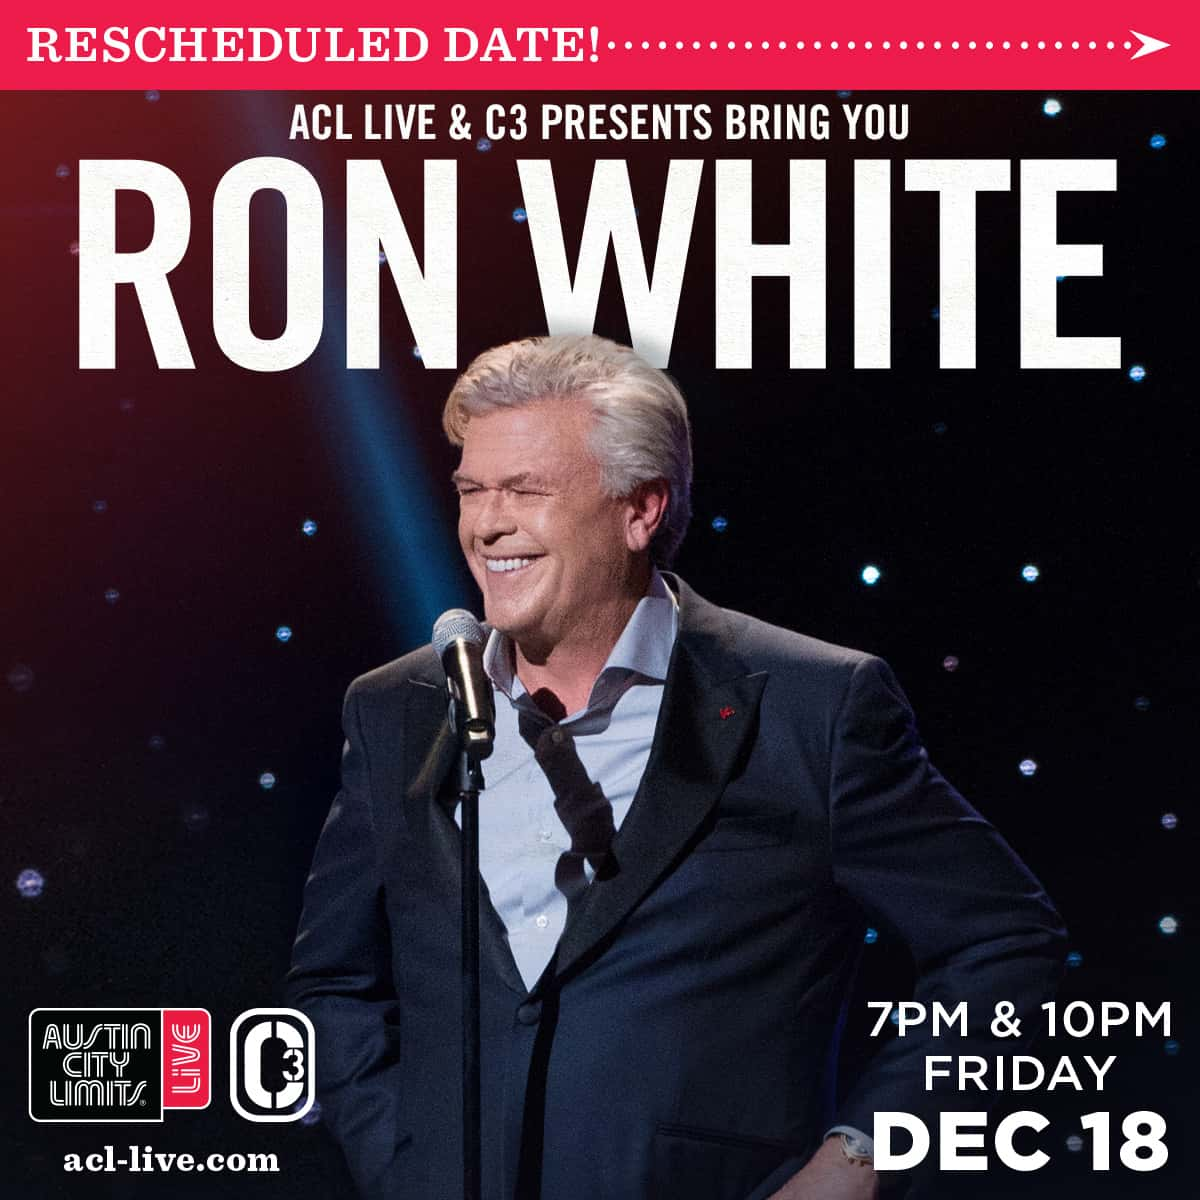 Ron White December 18th